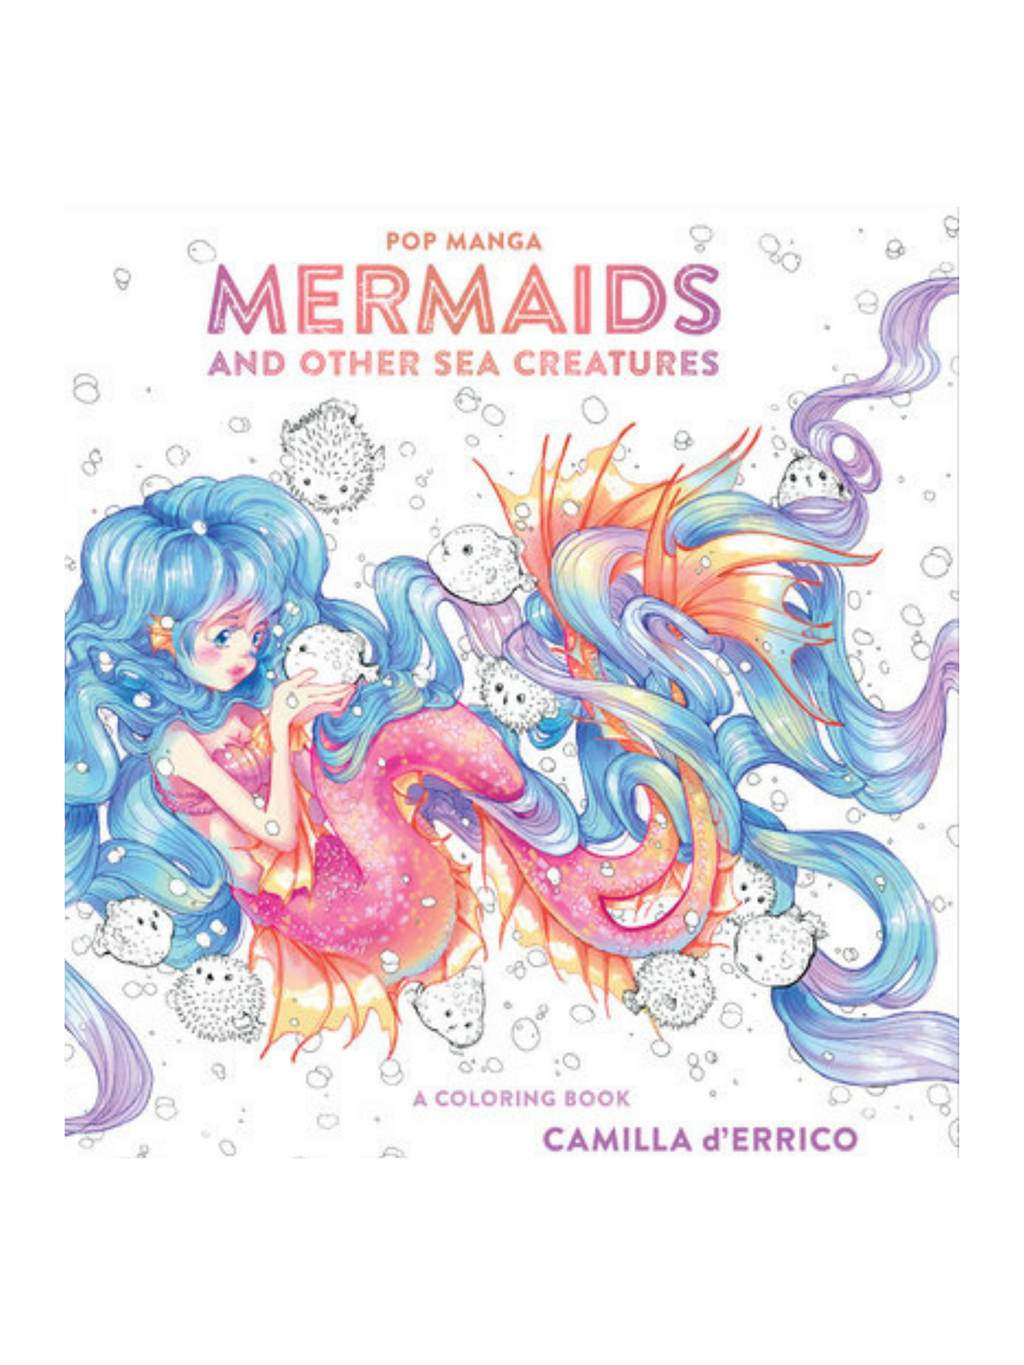 Mermaids and Other Sea Creatures